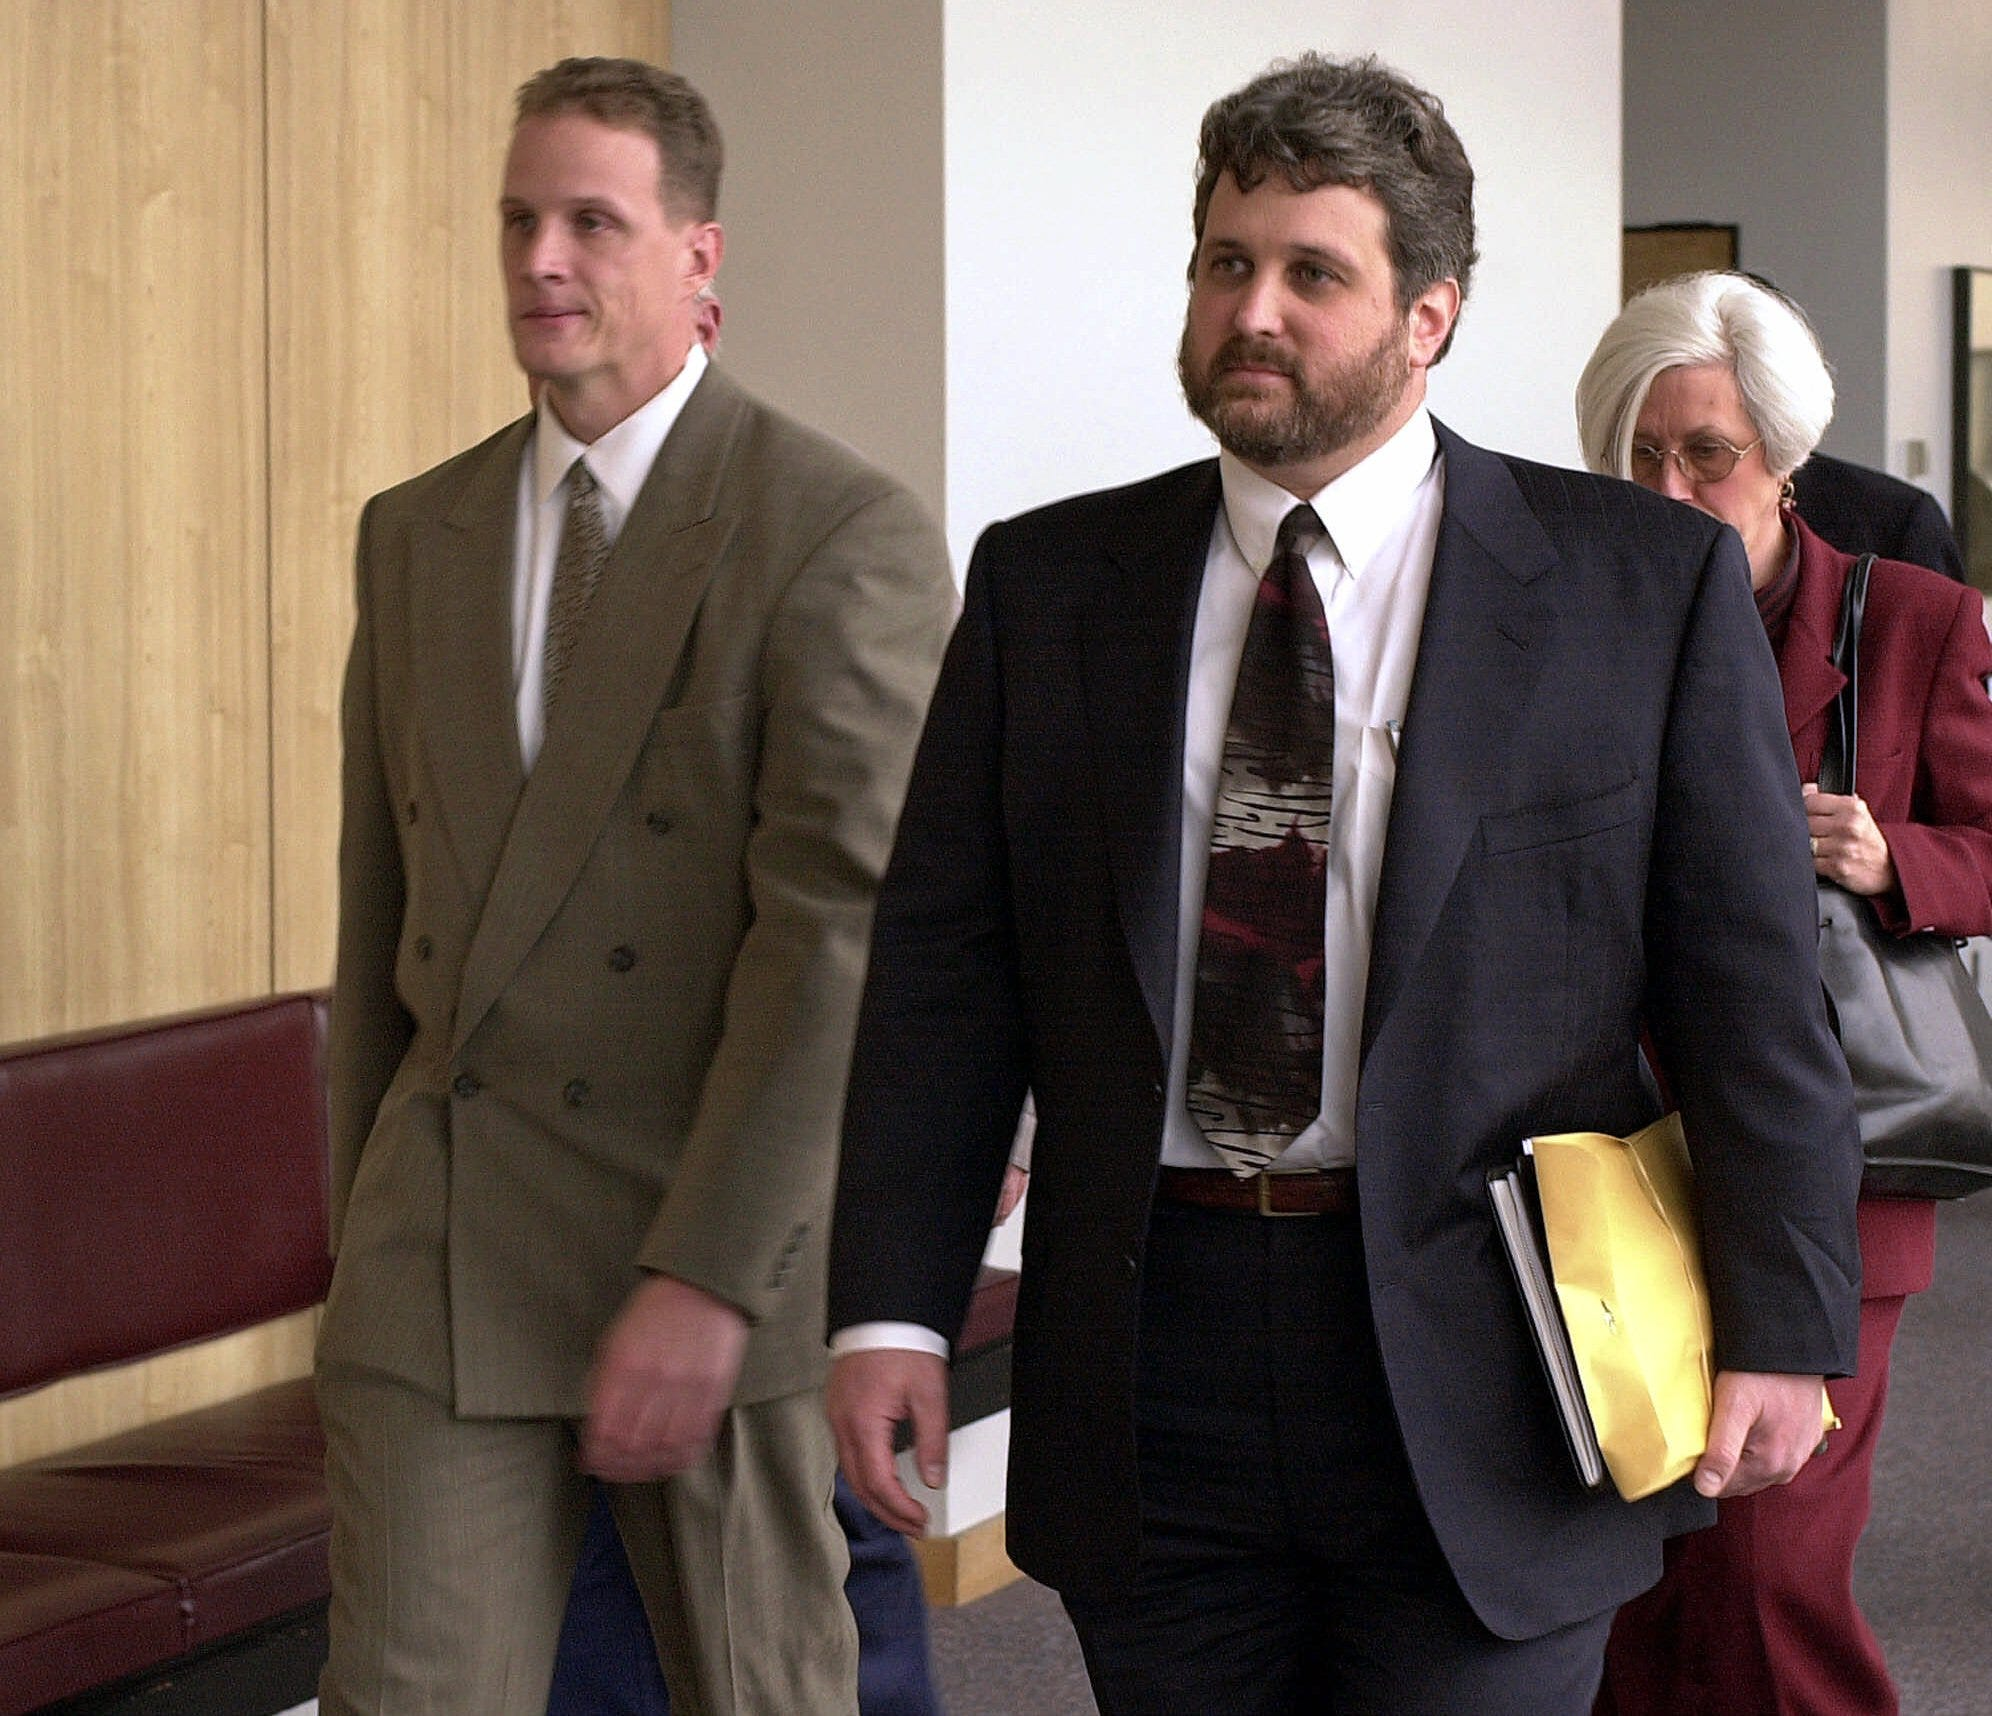 """Oakland police officer Matthew Hornung, left, and his attorney Ed Fishman exit a courtroom Dec. 6, 2000, at Alameda County Superior Court in Oakland, Calif. Hornung and other officers were charged in """"The Riders"""" scandal."""